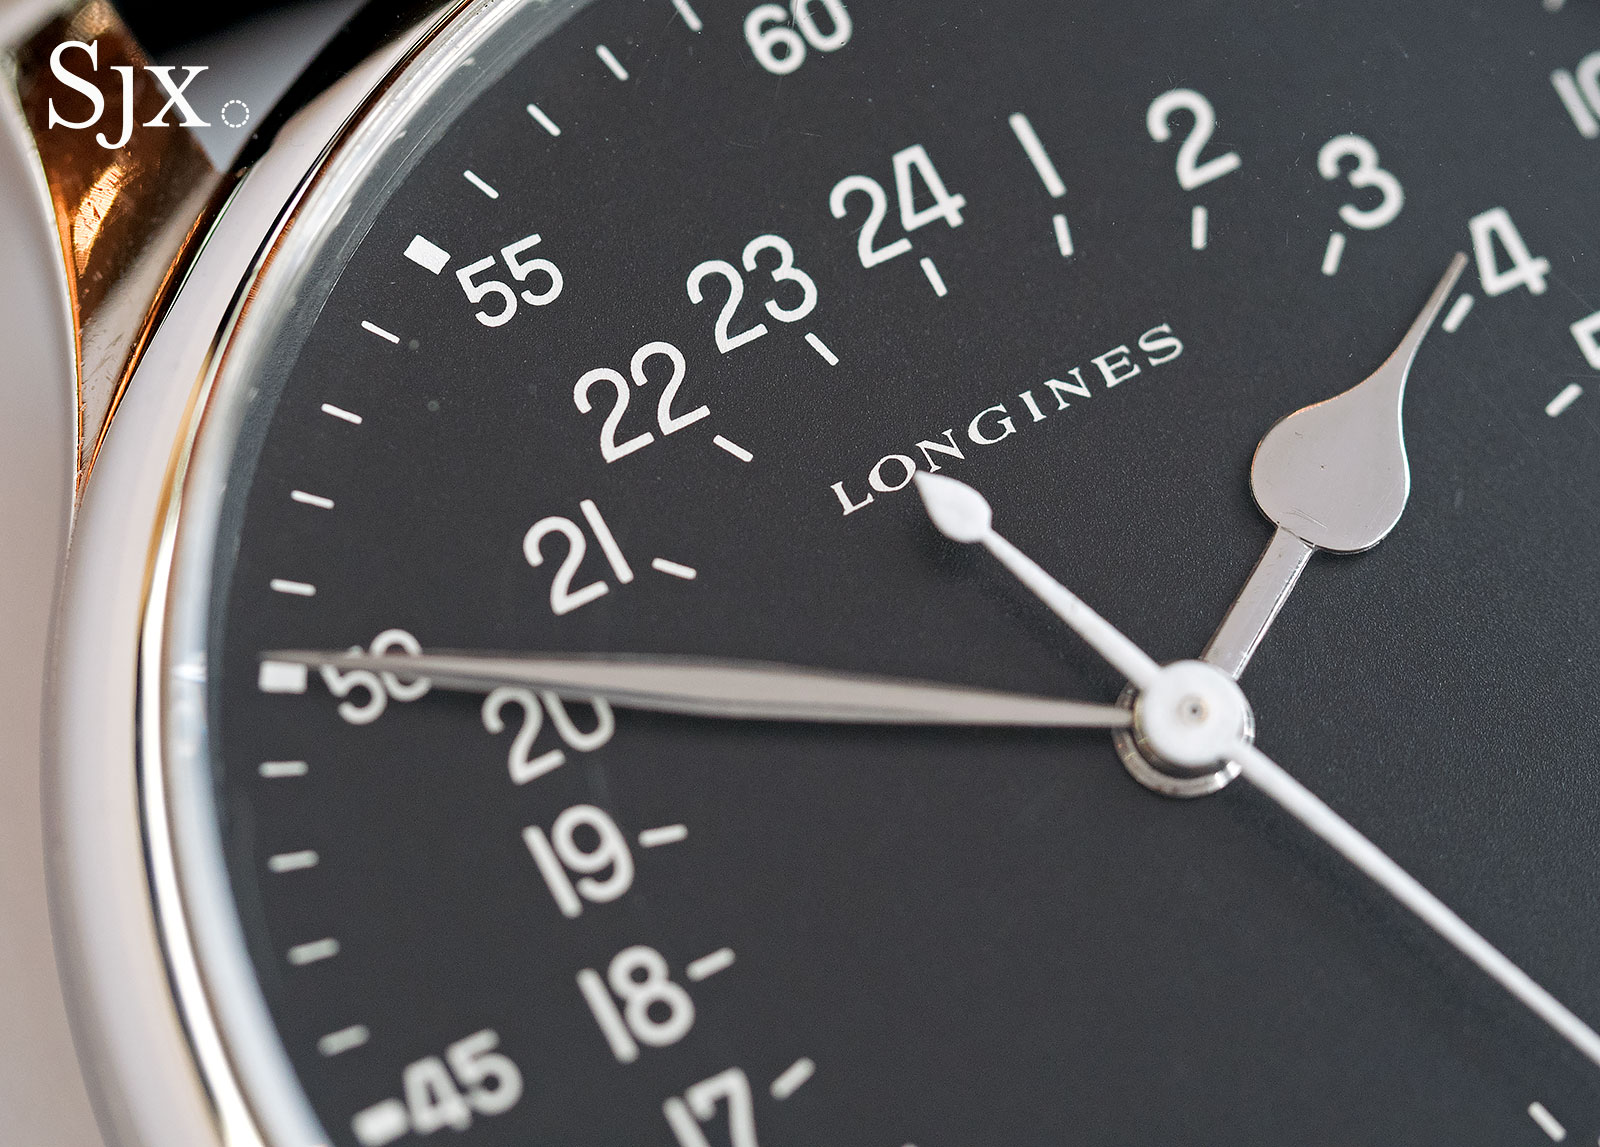 Longines 6630 Swissair 2